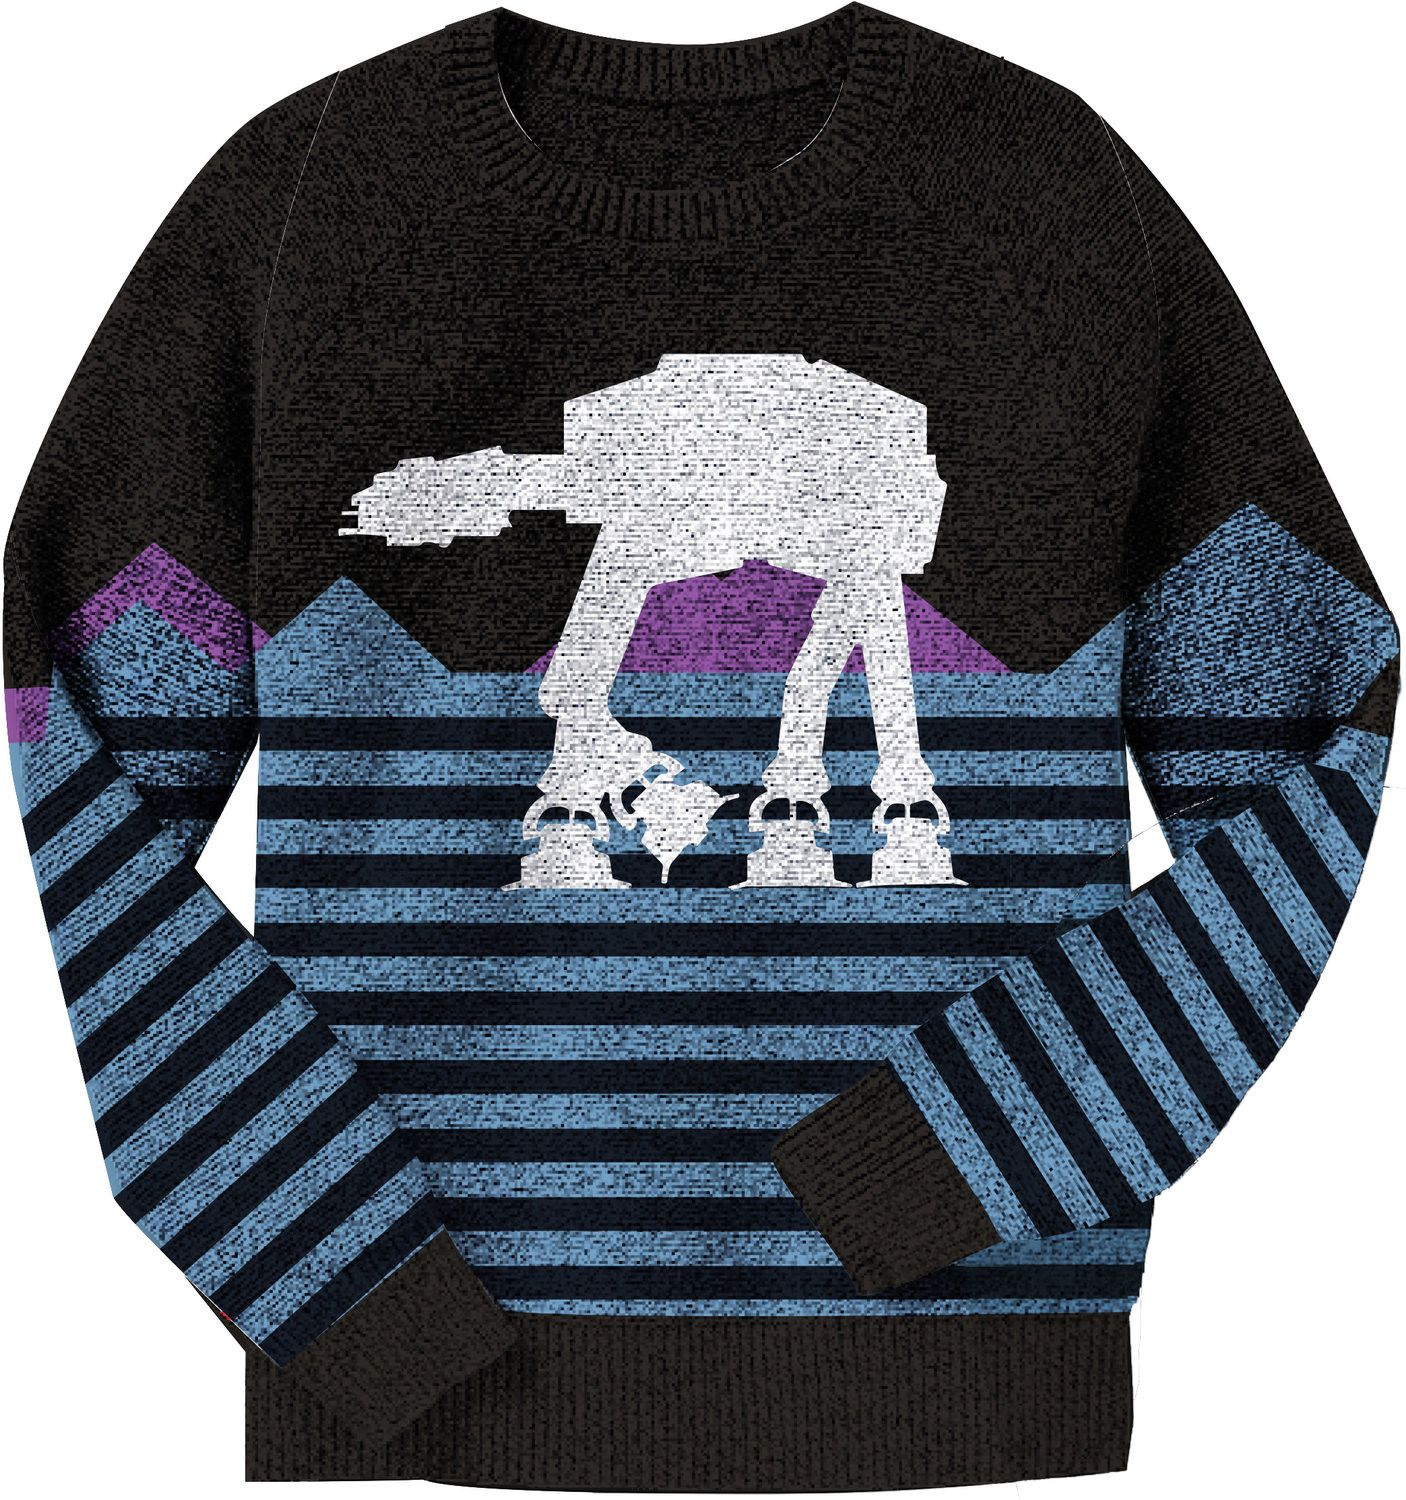 AT-AT Star Wars Sweater | Star and Star wars christmas sweater